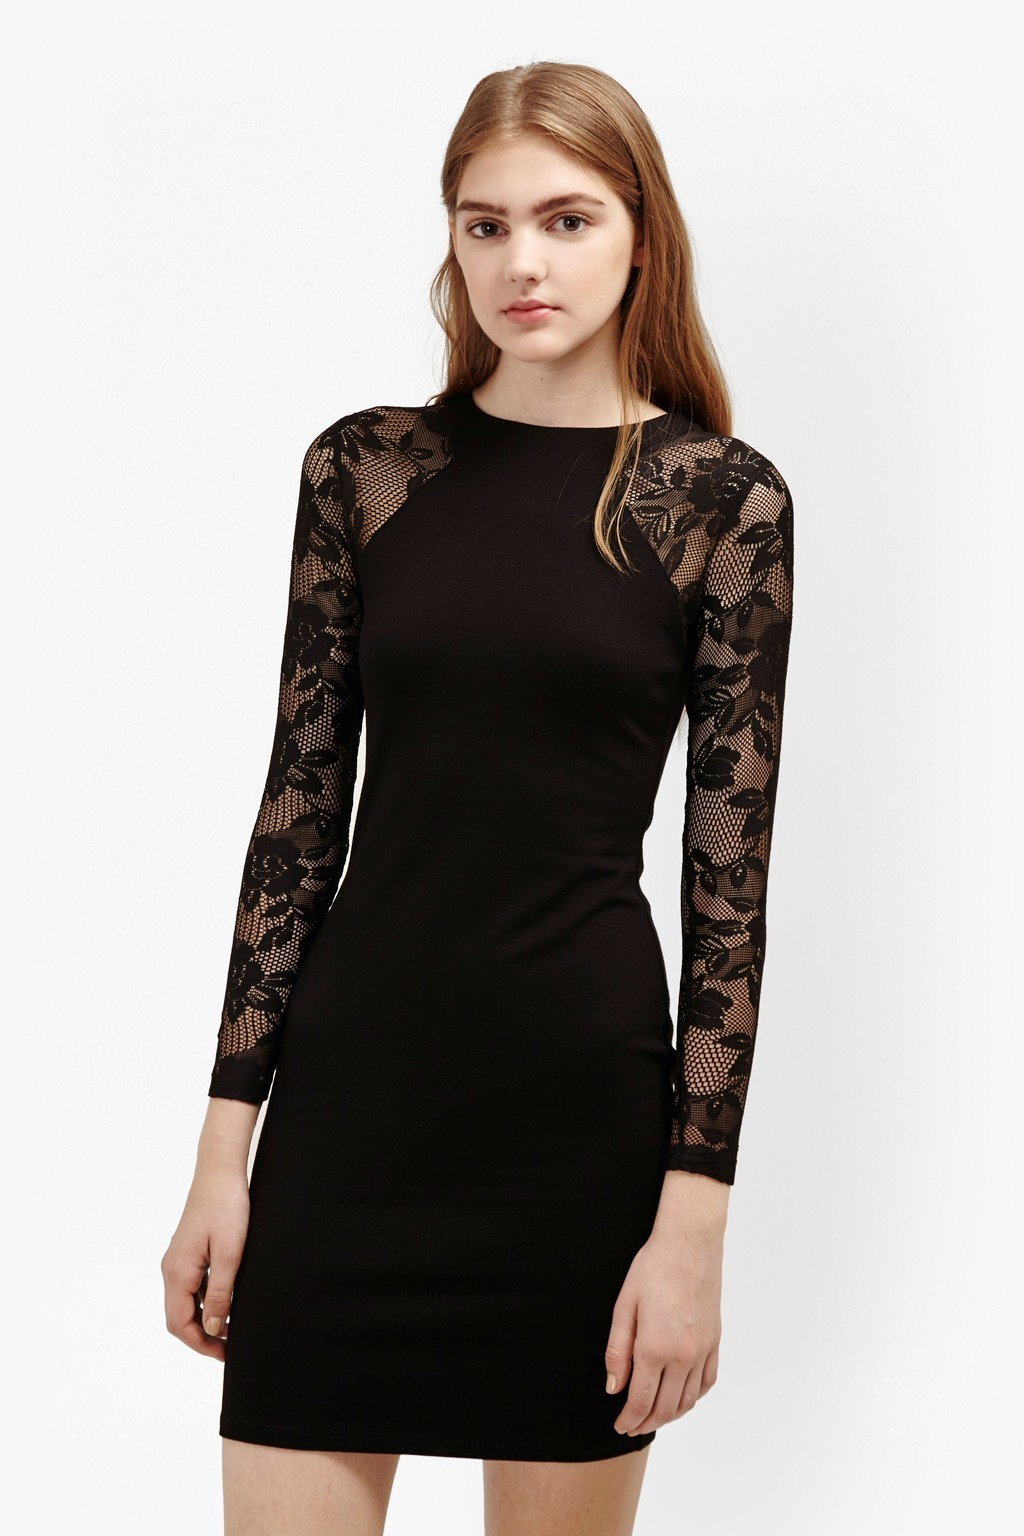 Tatlin Beau Jersey Lace Dress Black - length: mid thigh; fit: tight; style: bodycon; hip detail: draws attention to hips; predominant colour: black; occasions: evening; fibres: polyester/polyamide - stretch; neckline: crew; sleeve length: long sleeve; sleeve style: standard; texture group: lace; pattern type: fabric; pattern size: standard; pattern: florals; shoulder detail: sheer at shoulder; season: a/w 2016; wardrobe: event